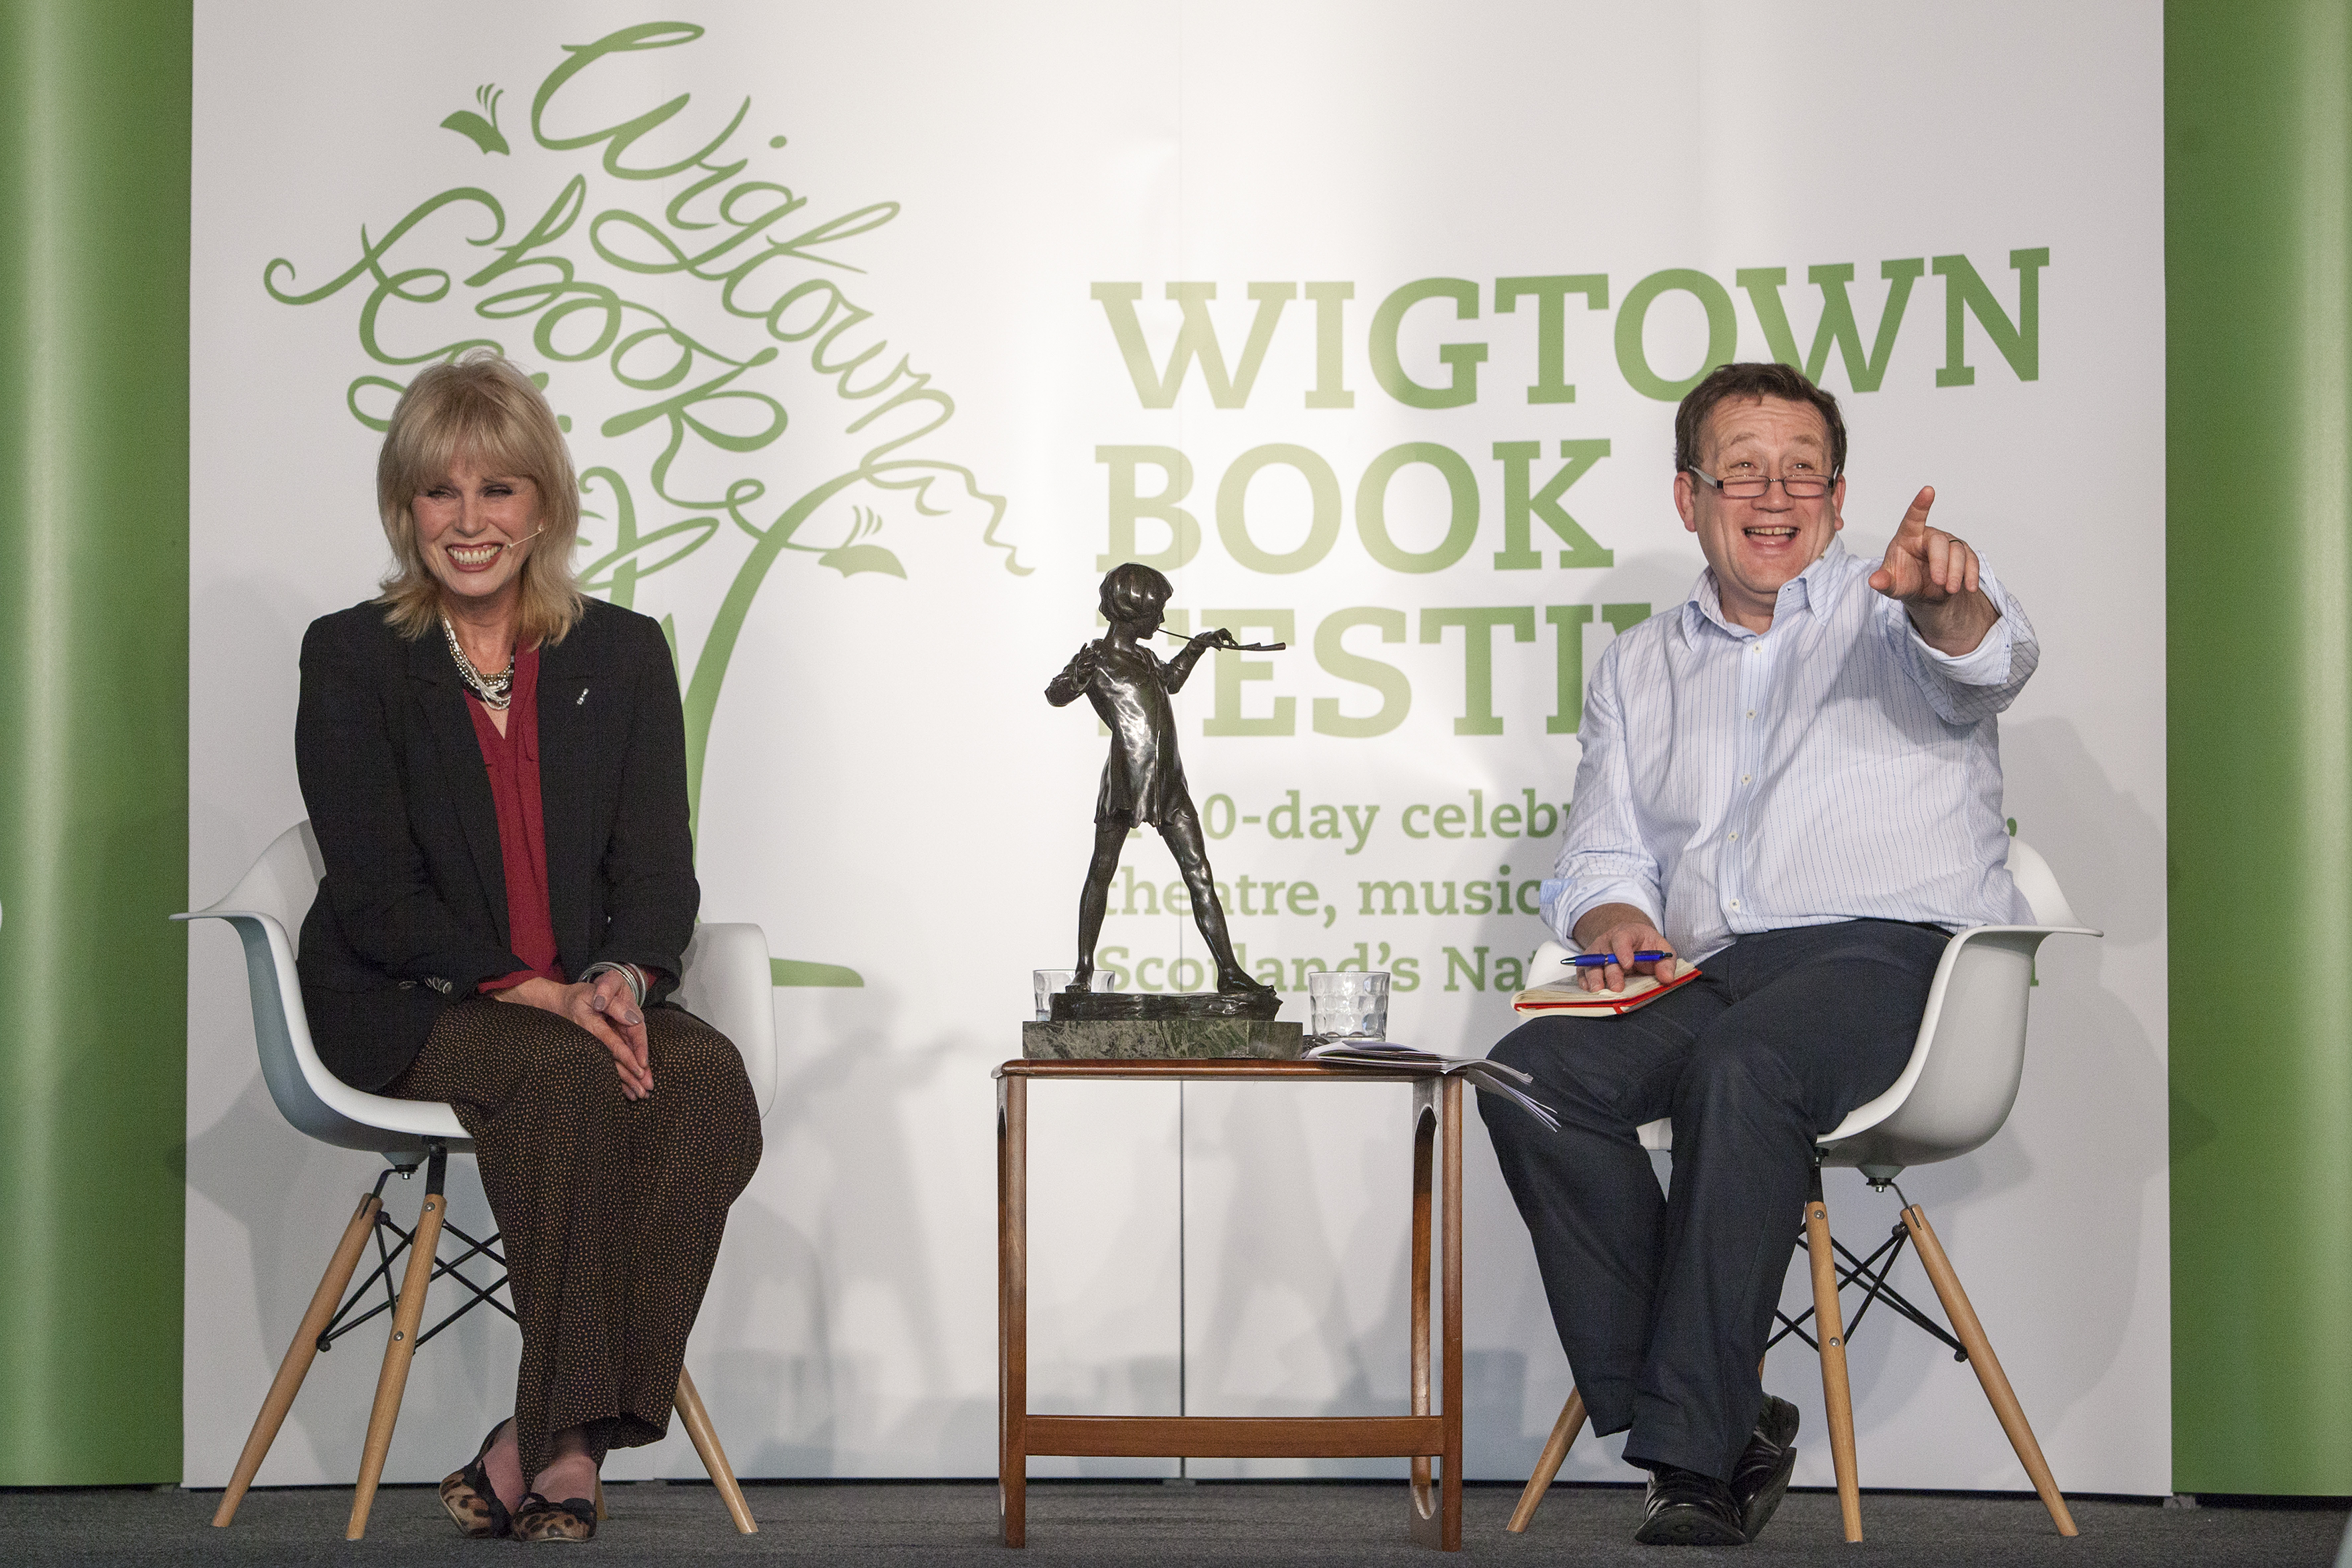 Wigtown Book Festival The Borders and the Southwest, Wigtown Book Festival - High Kirkland Cottage Holidays